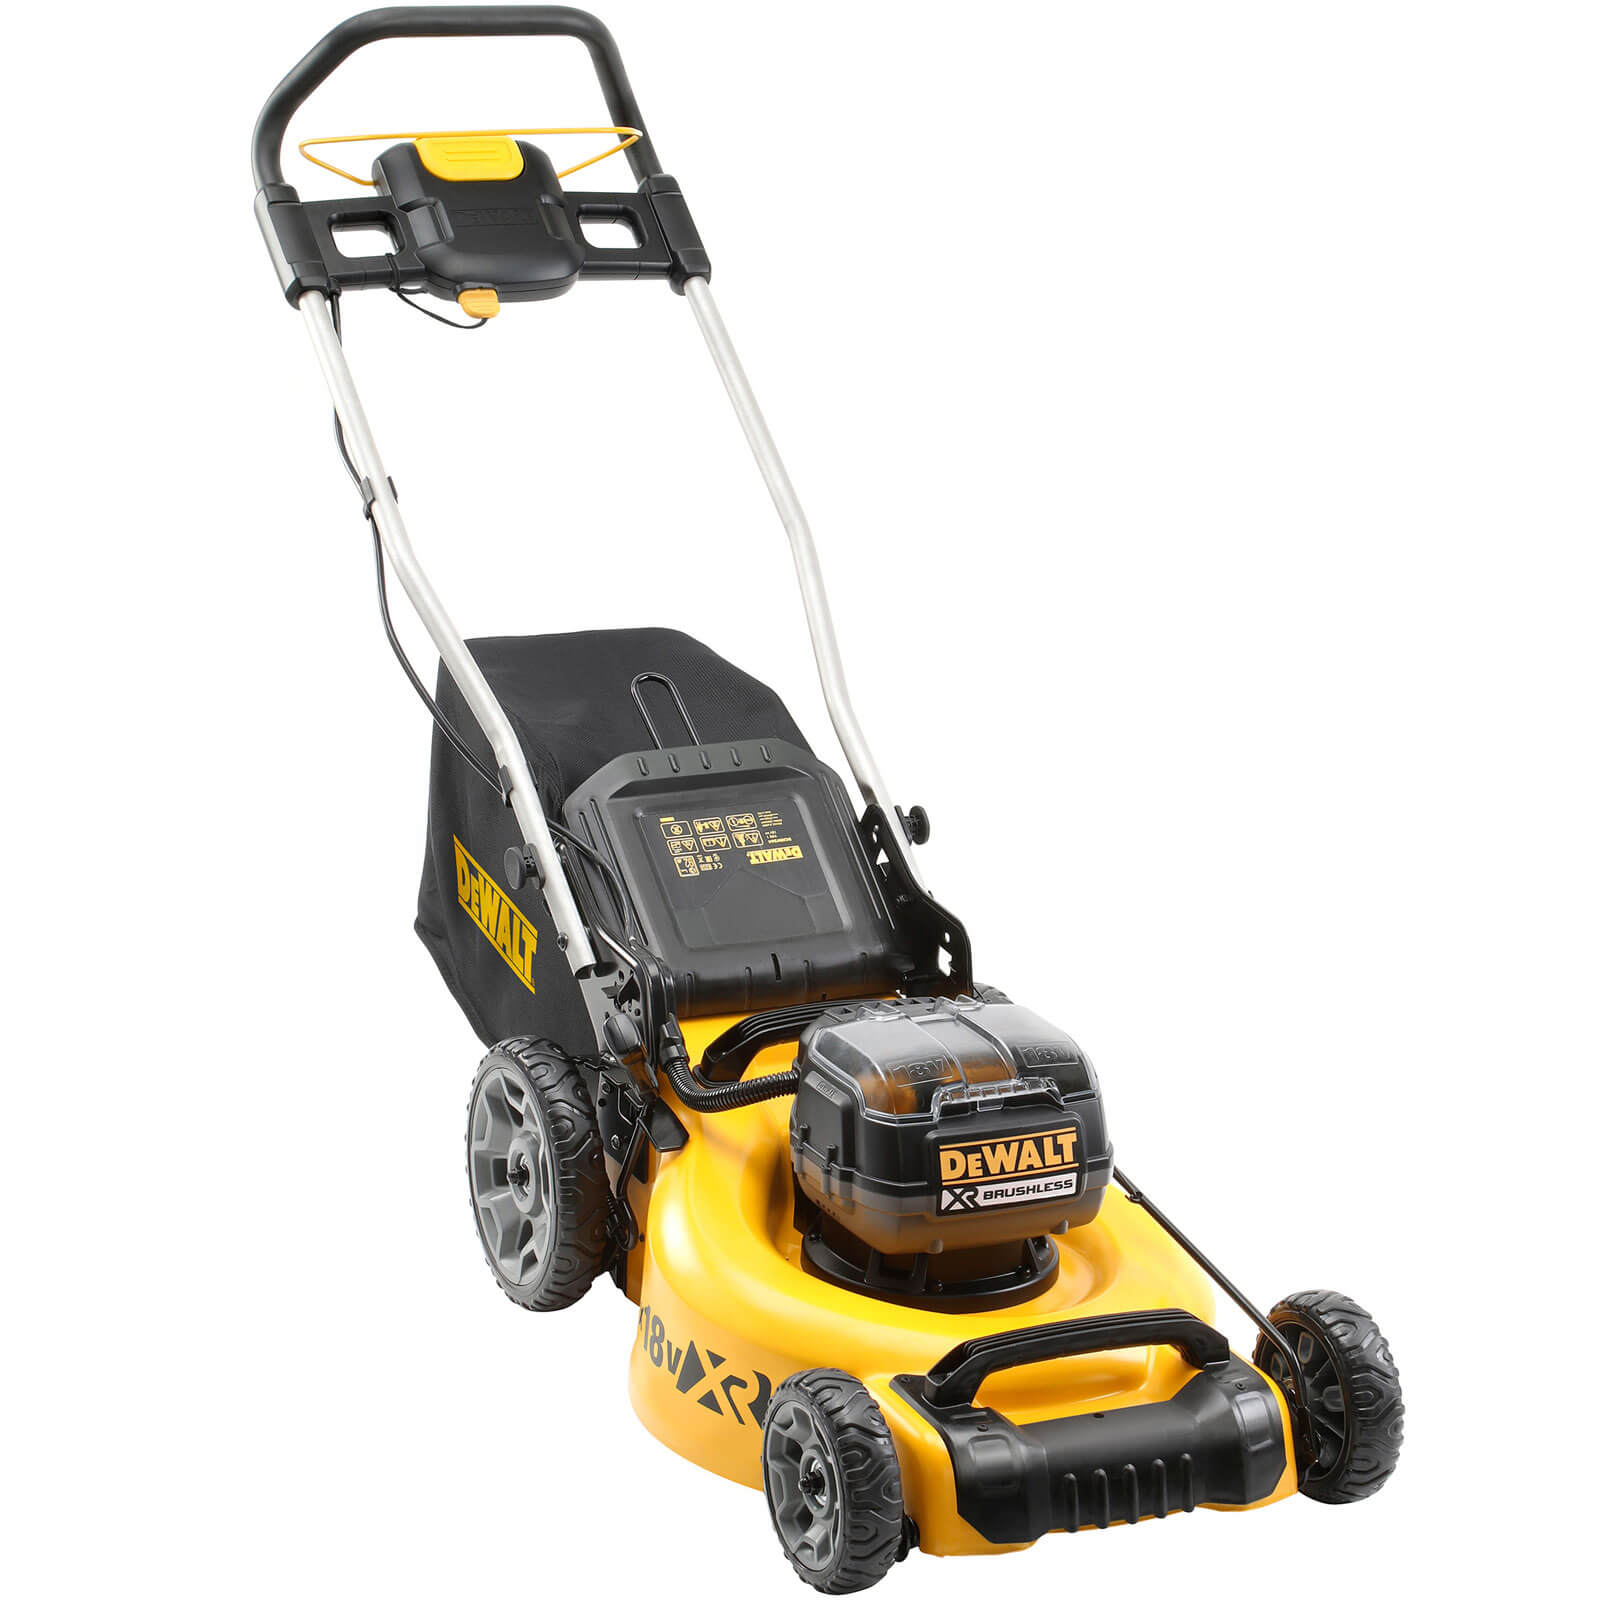 Image of DeWalt DCMW564 Twin 18v XR Cordless Brushless Lawnmower No Batteries No Charger